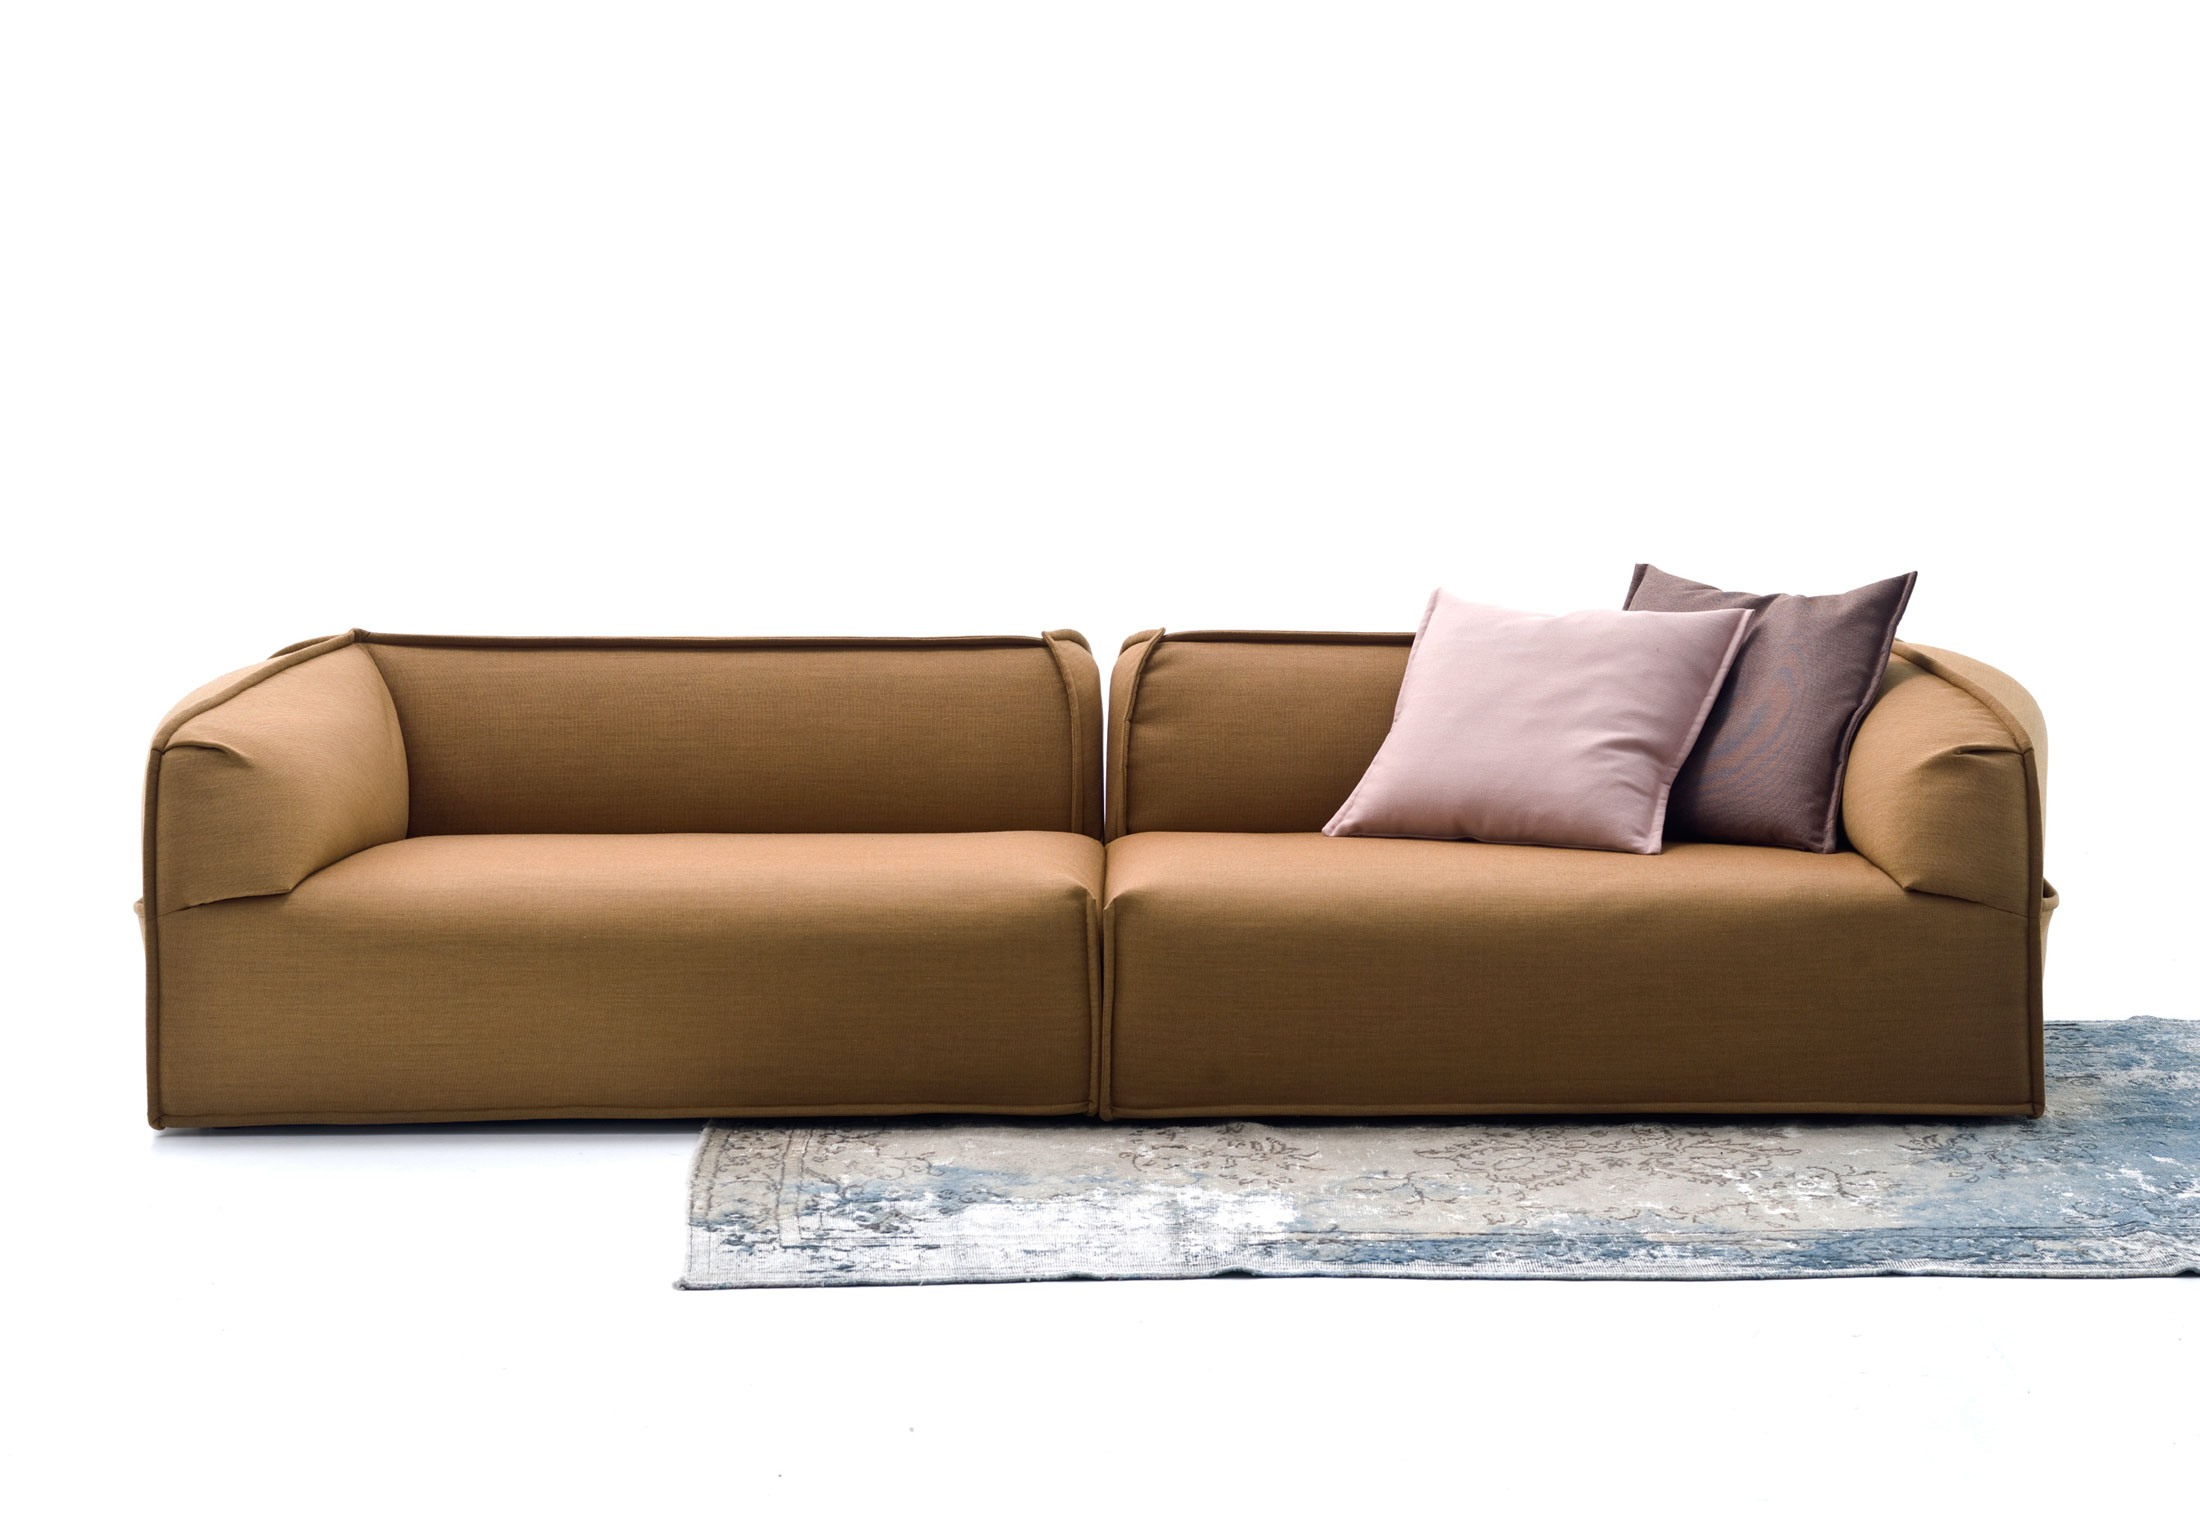 Kitchen Furniture Manufacturers M A S S A S Sofa By Moroso Stylepark